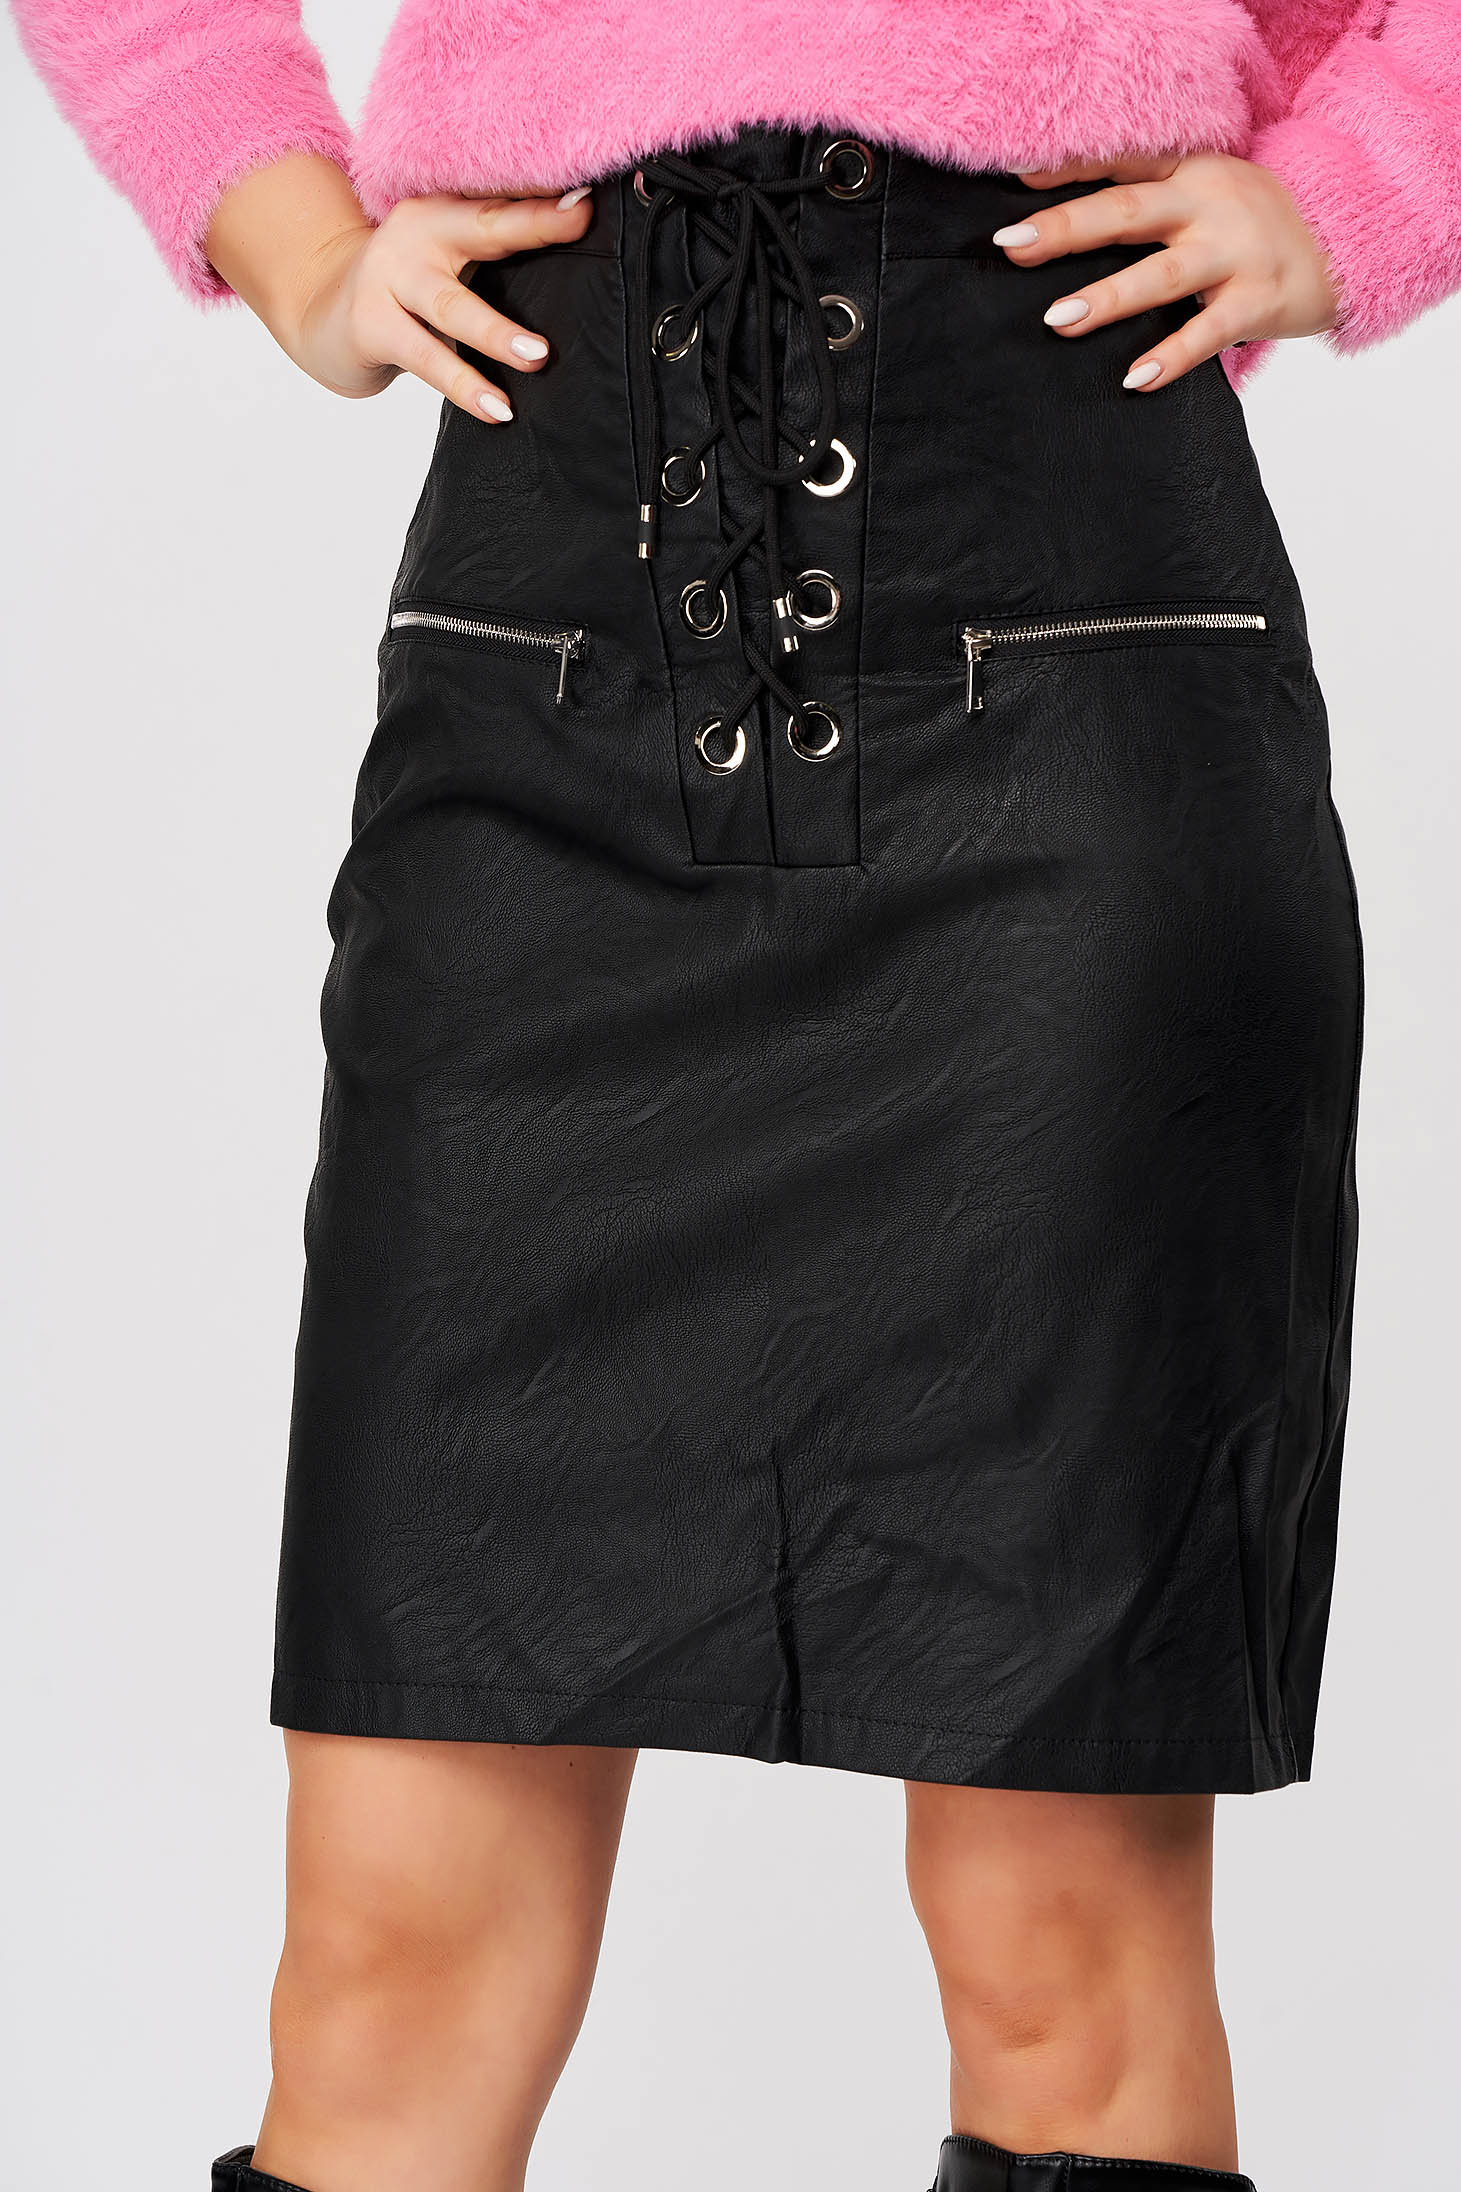 Black skirt casual short cut pencil from ecological leather ribbon fastening